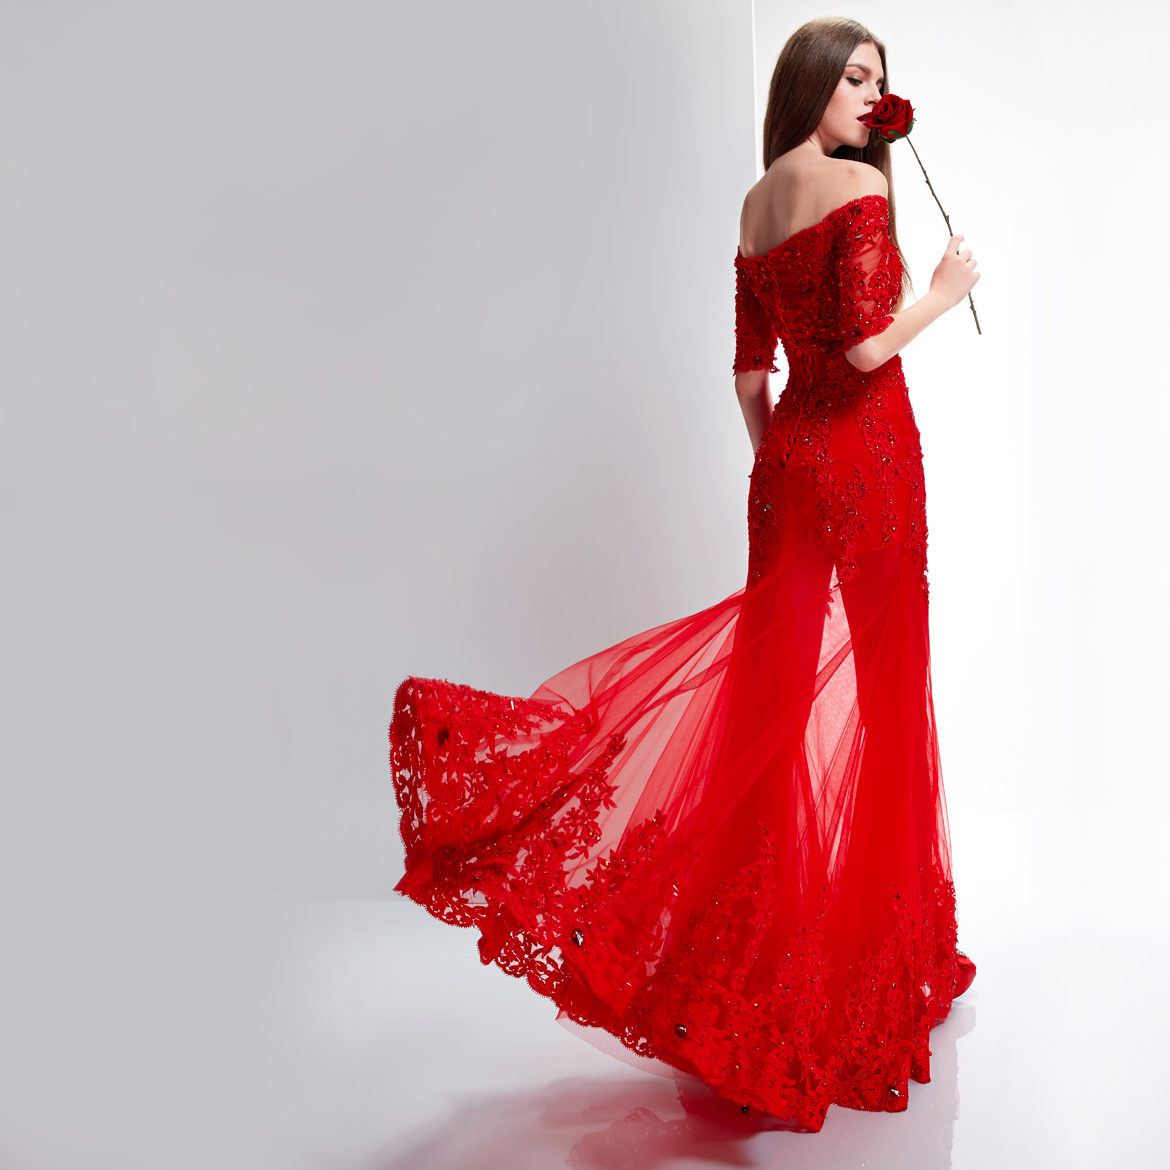 Wedding dresses red women 39 s fashion for Wedding dresses with red in them